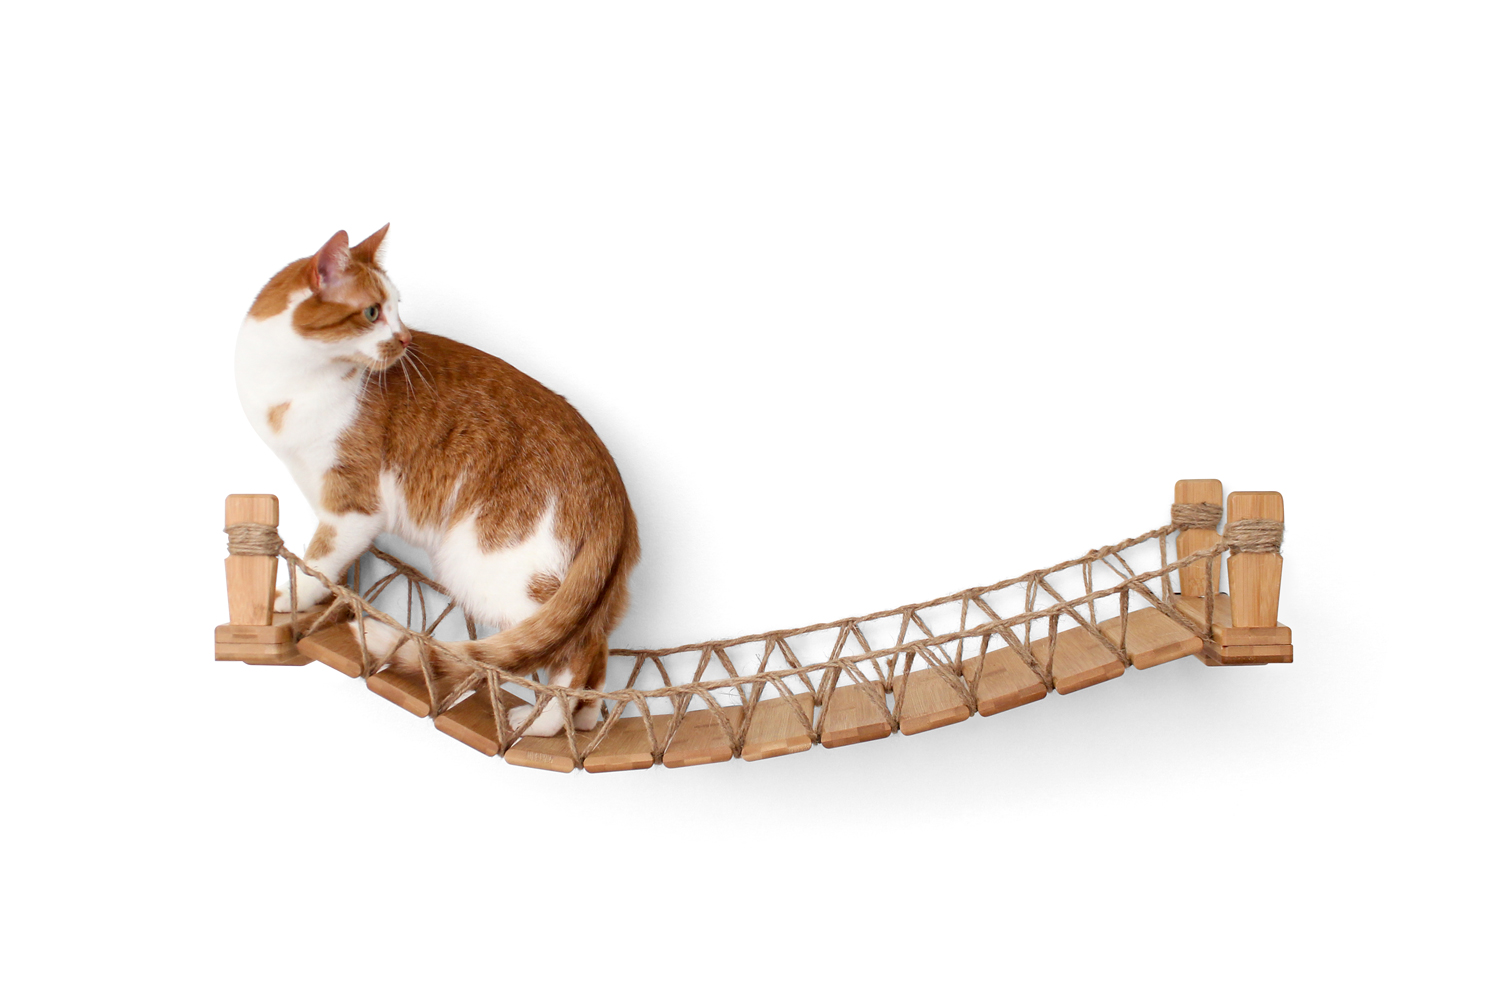 This photo displays a cat on the Cat Bridge in Natural, a light brown stain.